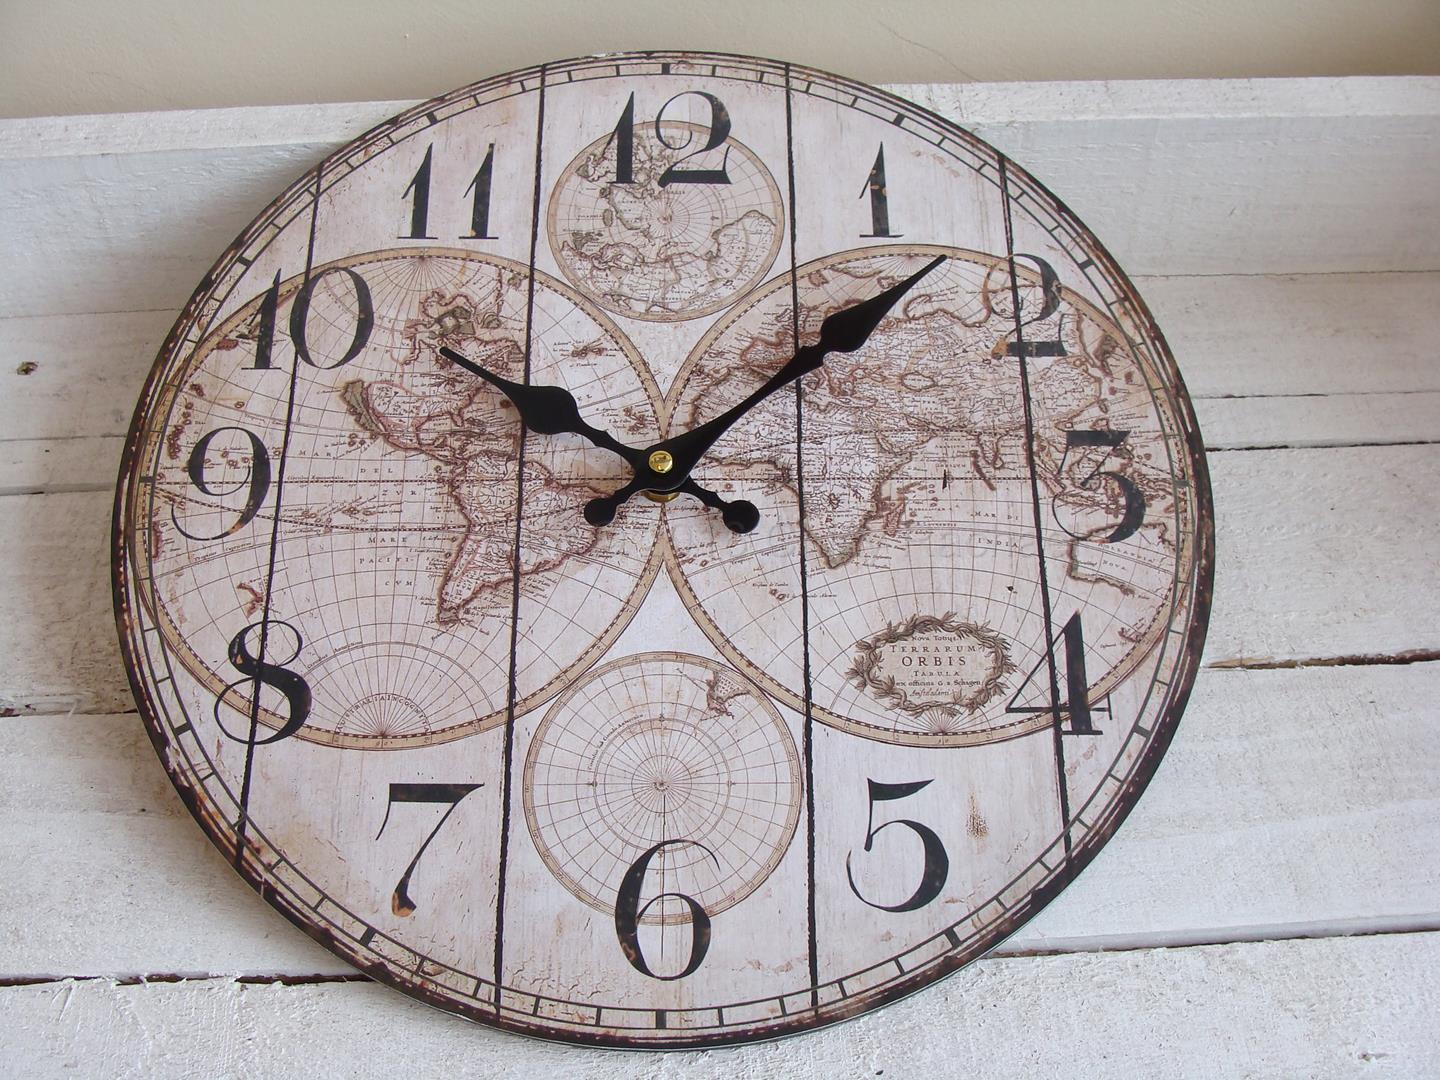 Small vintage world map wall clock chicy rachael small world map wall clock gumiabroncs Image collections